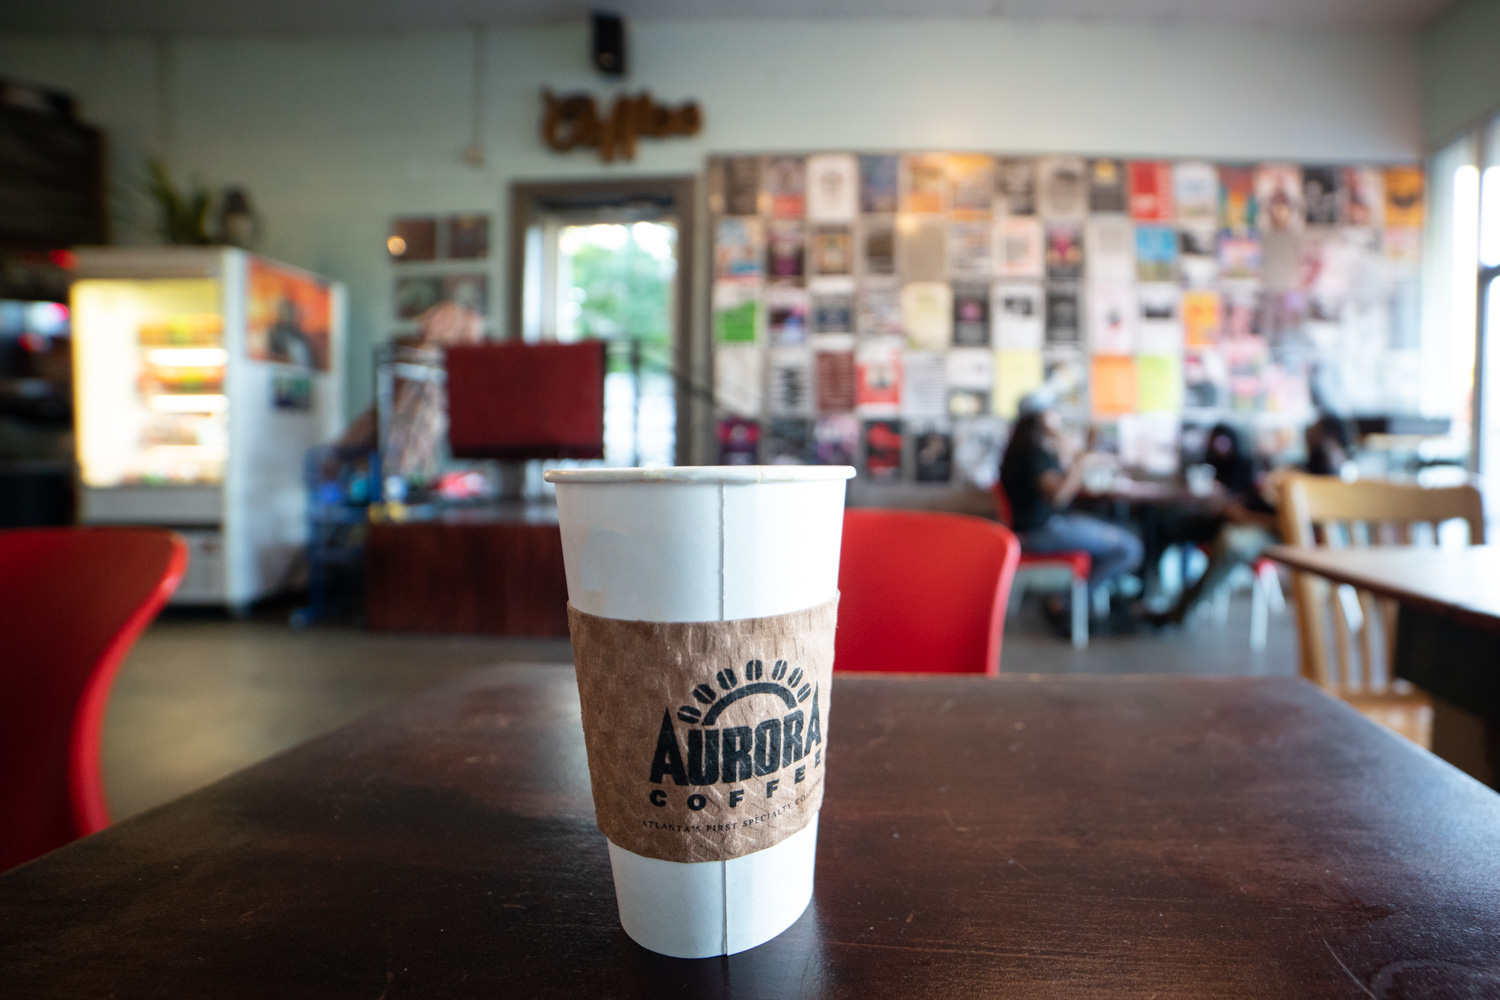 Coffee at Aurora. In the background: a full wall display of posters for local events, art shows, concerts, etc.